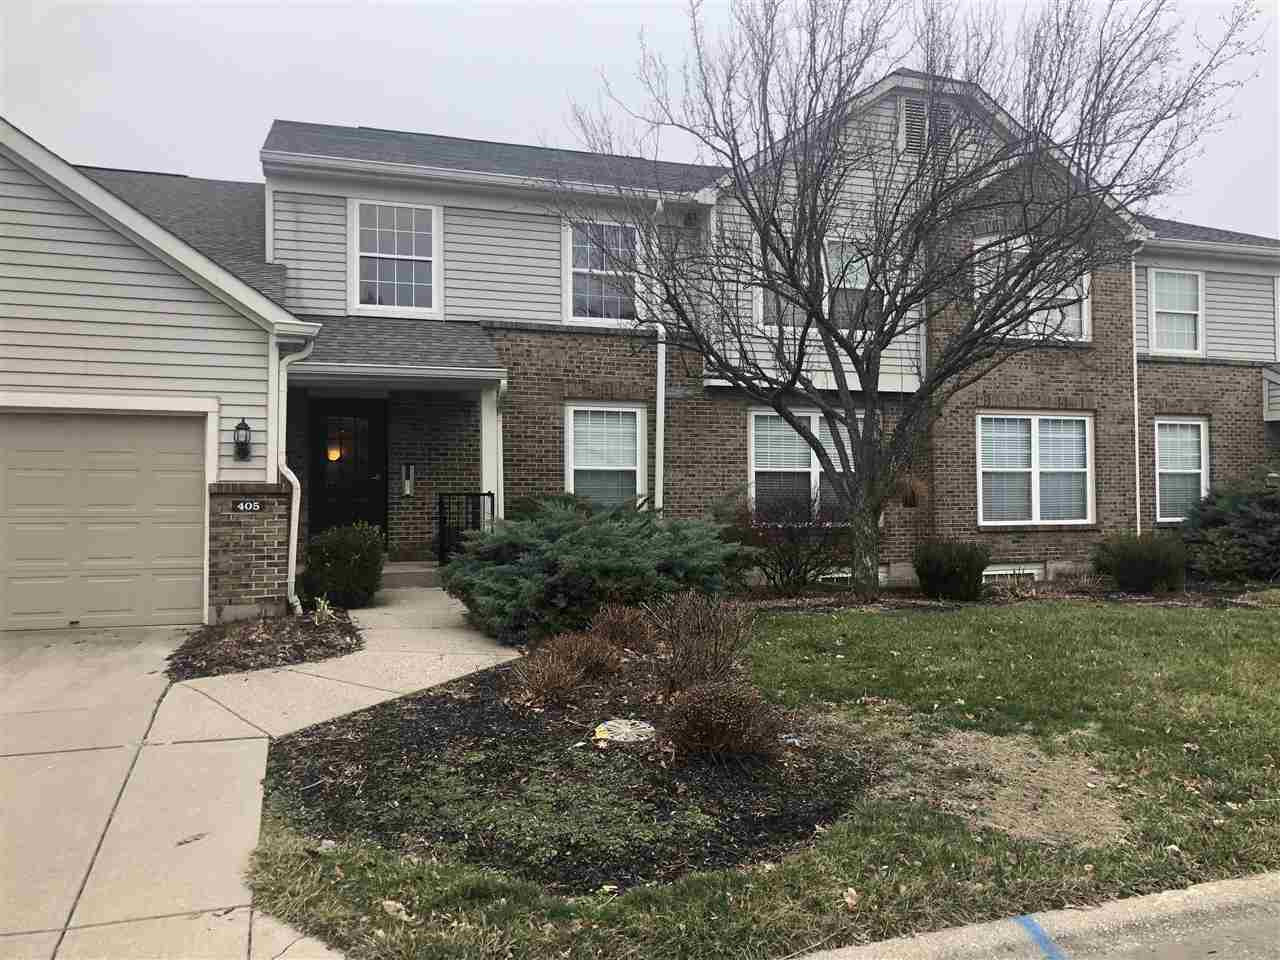 Photo 1 for 405 Lighthouse Ct, 102 Wilder, KY 41076